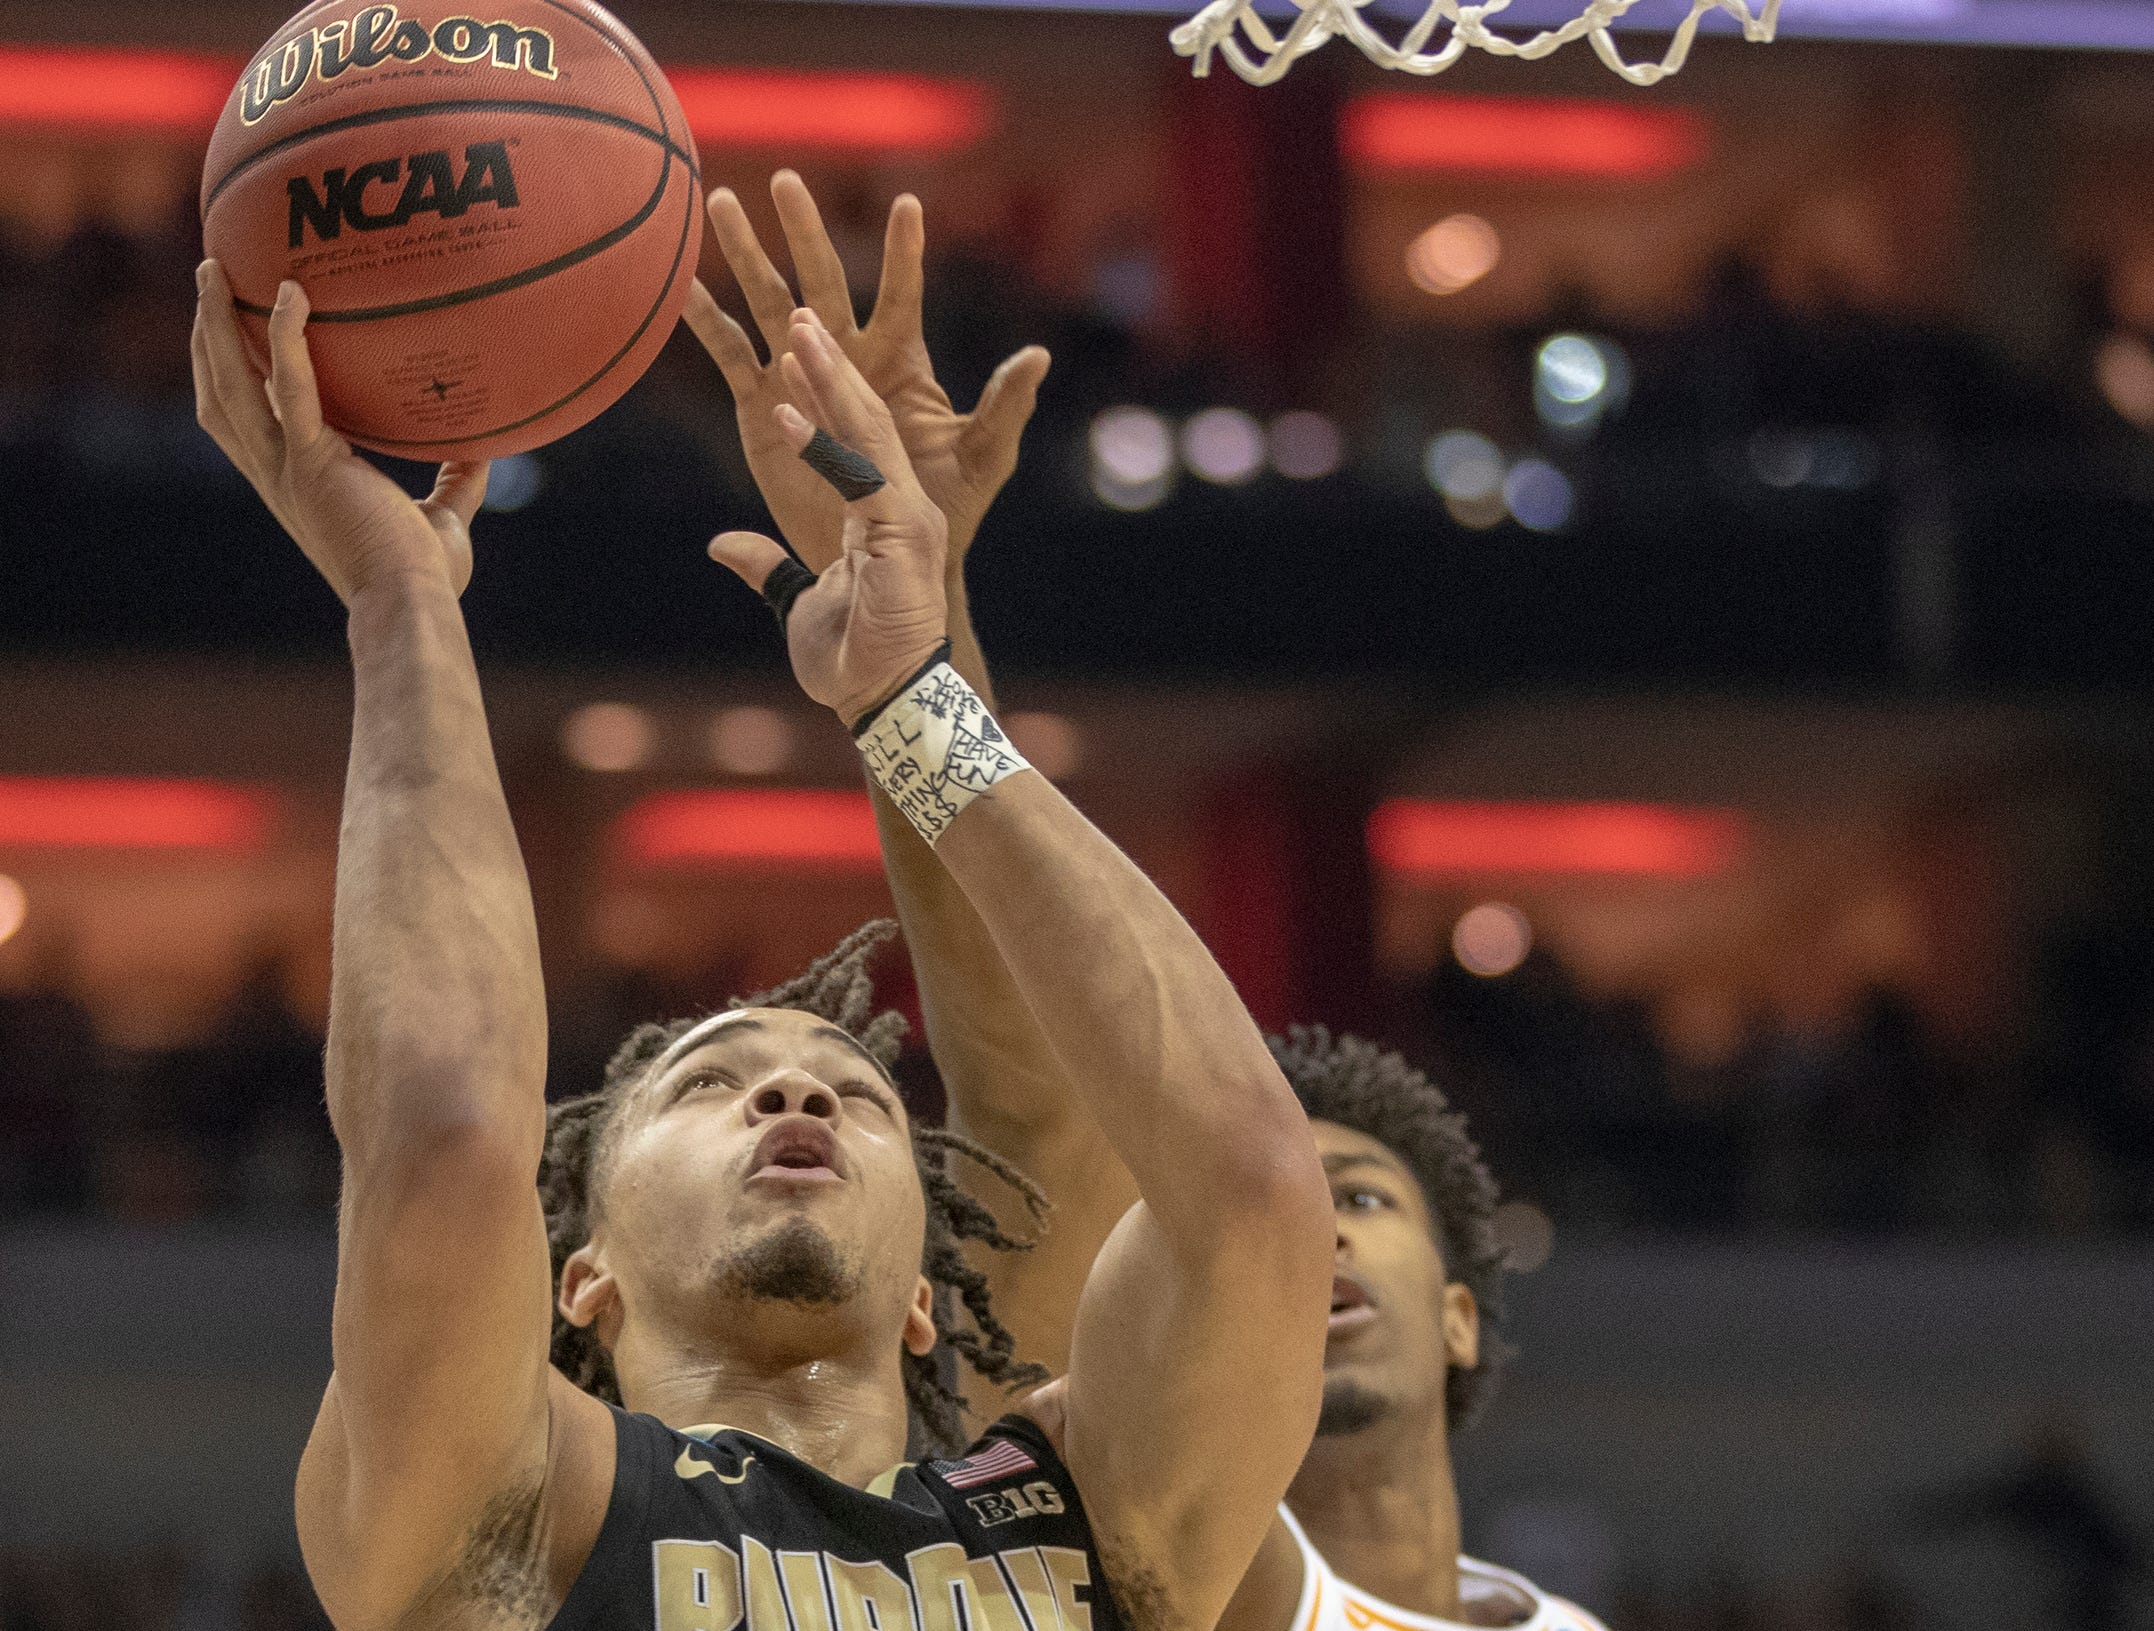 Carsen Edwards of the Purdue Boilermakers puts up a shot on Kyle Alexander of the Tennessee Volunteers, first half, NCAA Division 1 Men's Basketball 'Sweet Sixteen' game, KFC Yum Center, Louisville, Thursday, March 28, 2019.